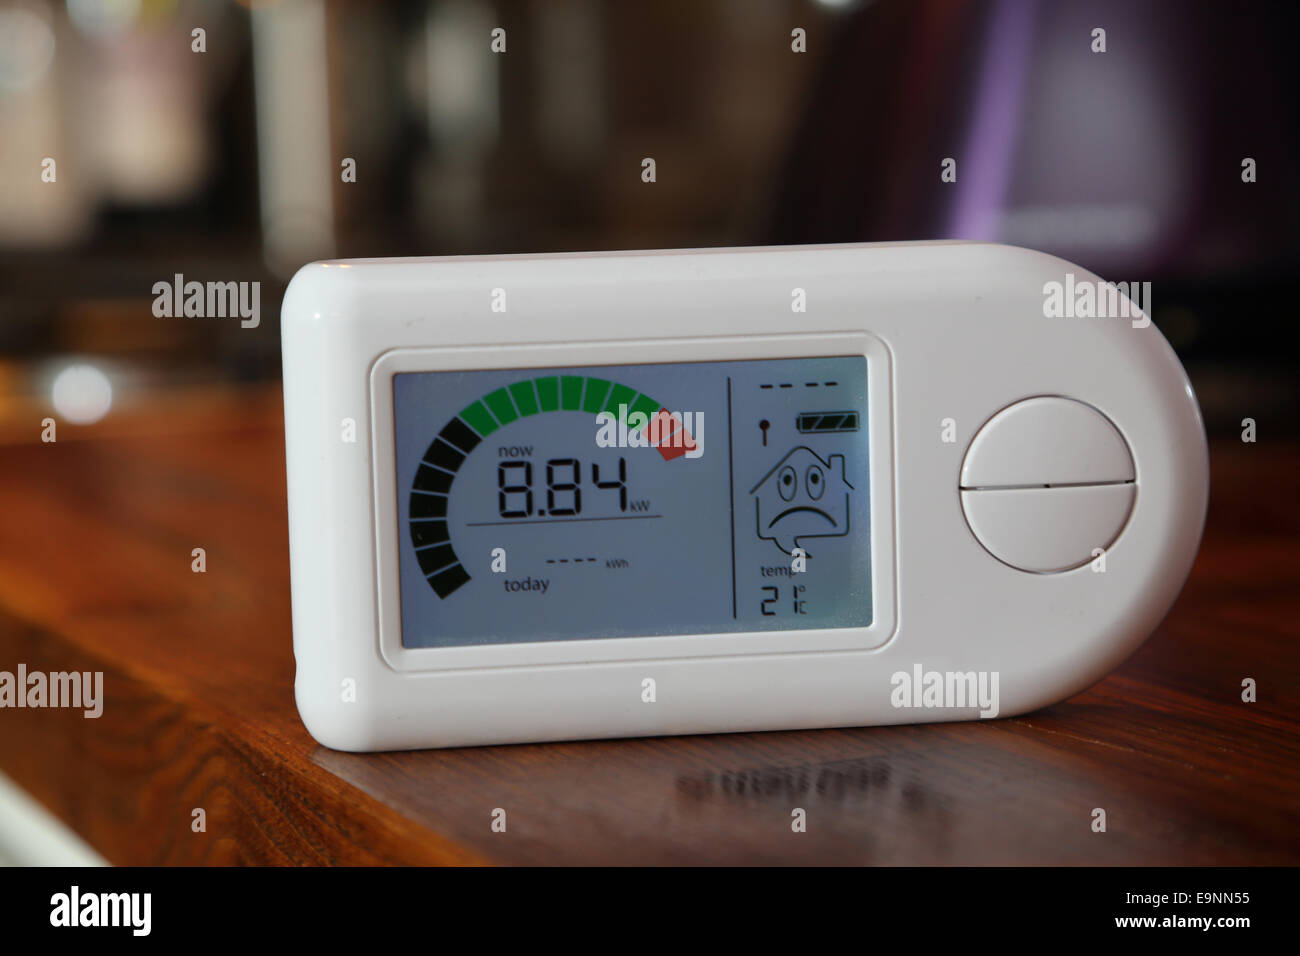 Close-up of a domestic electricity monitor showing a high level of energy consumption - 8.84Kw - Stock Image